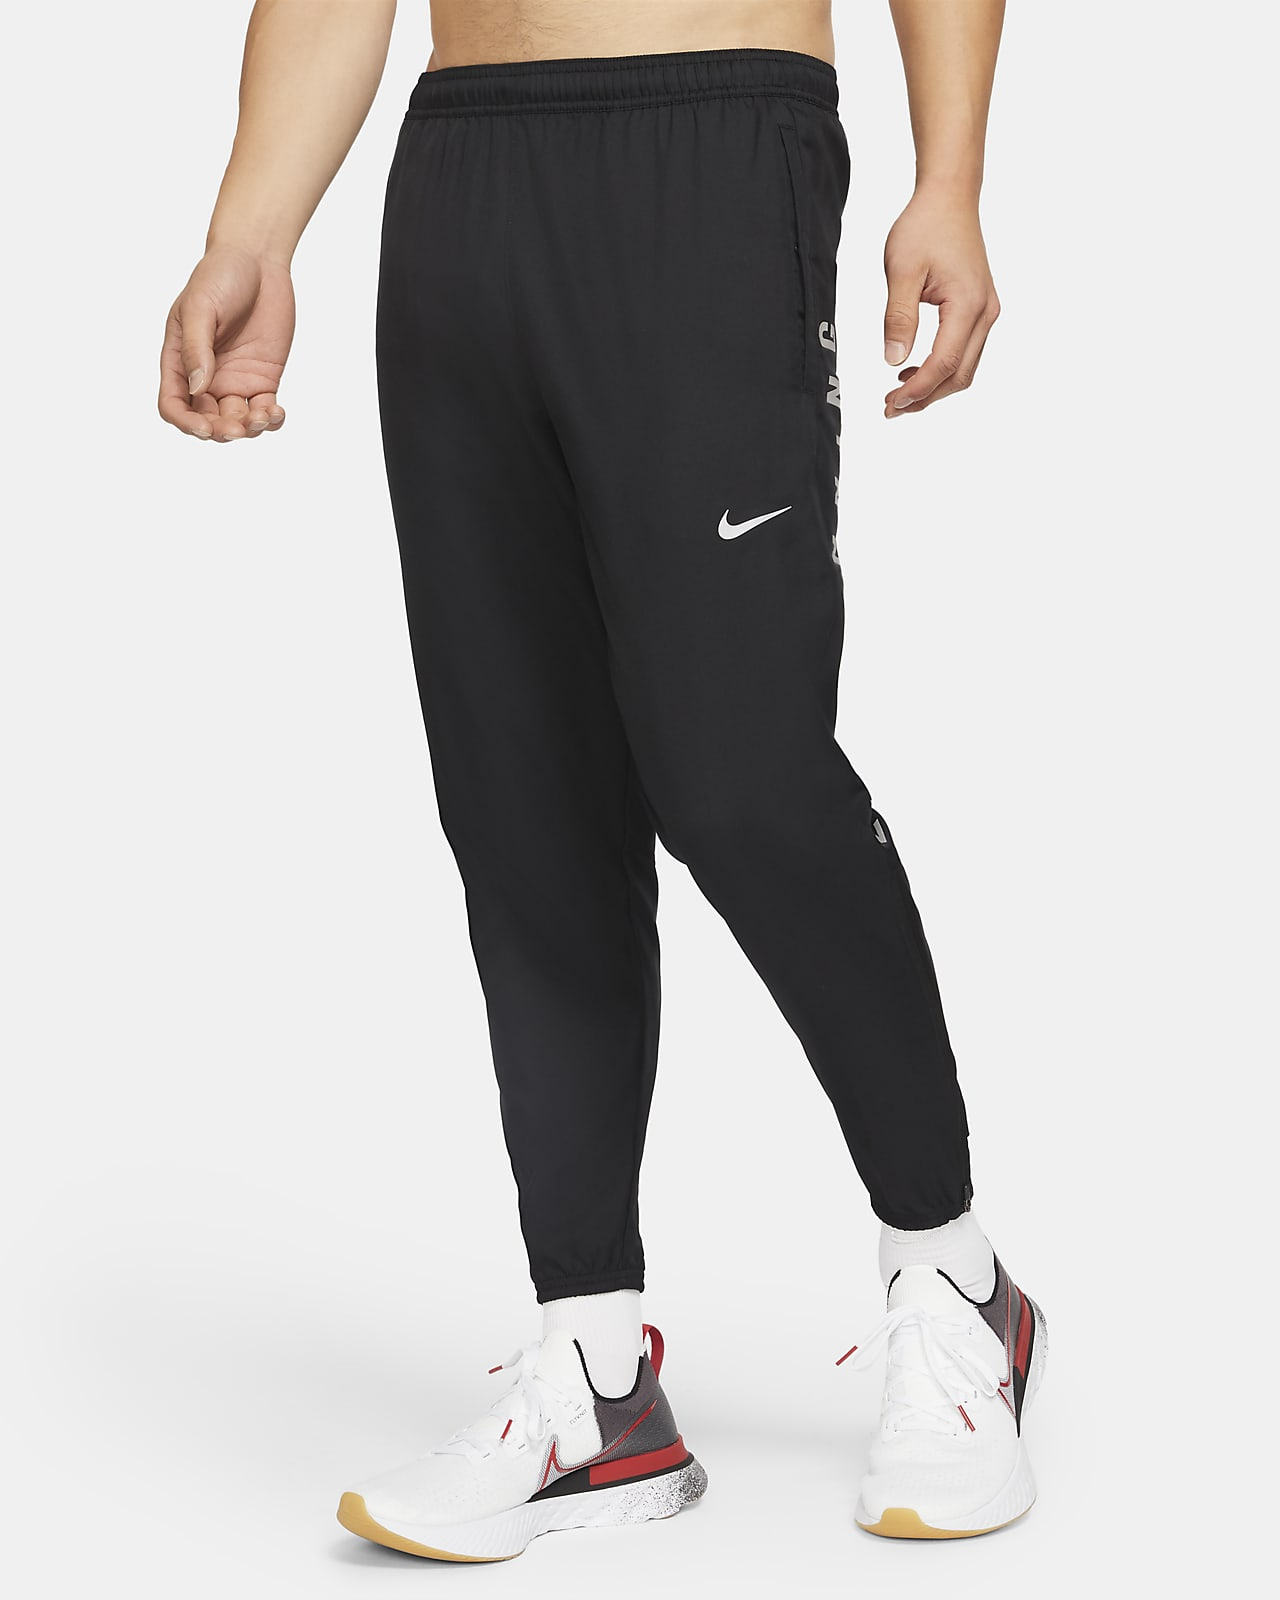 Nike Essential Run Division Men's Woven Running Trousers